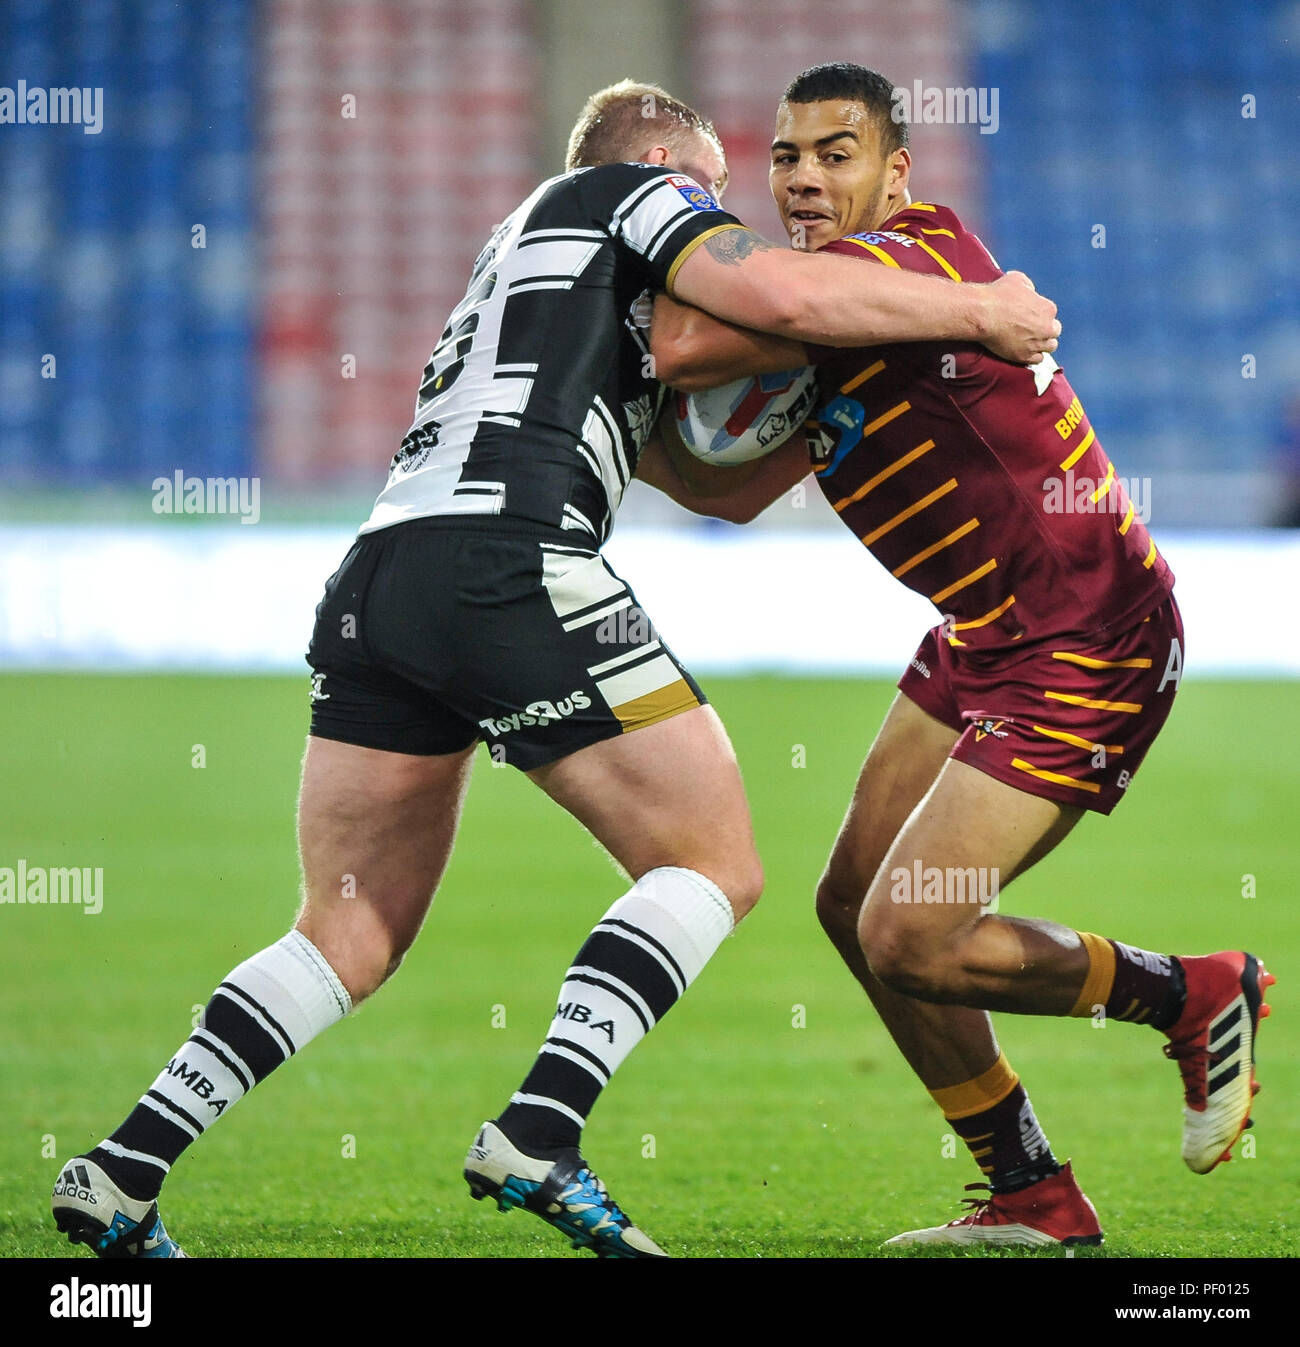 Huddersfield, UK. 17th August 2018.  Rugby League Super 8's match between Huddersfield Giants vs Hull FC. ; Darnell Macintosh of Huddersfield Giants is stopped by Hull FC's Fetuli Talanoa at the  John Smiths Stadium, Huddersfield, UK.  Dean Williams Credit: Dean Williams/Alamy Live News Credit: Dean Williams/Alamy Live News Stock Photo